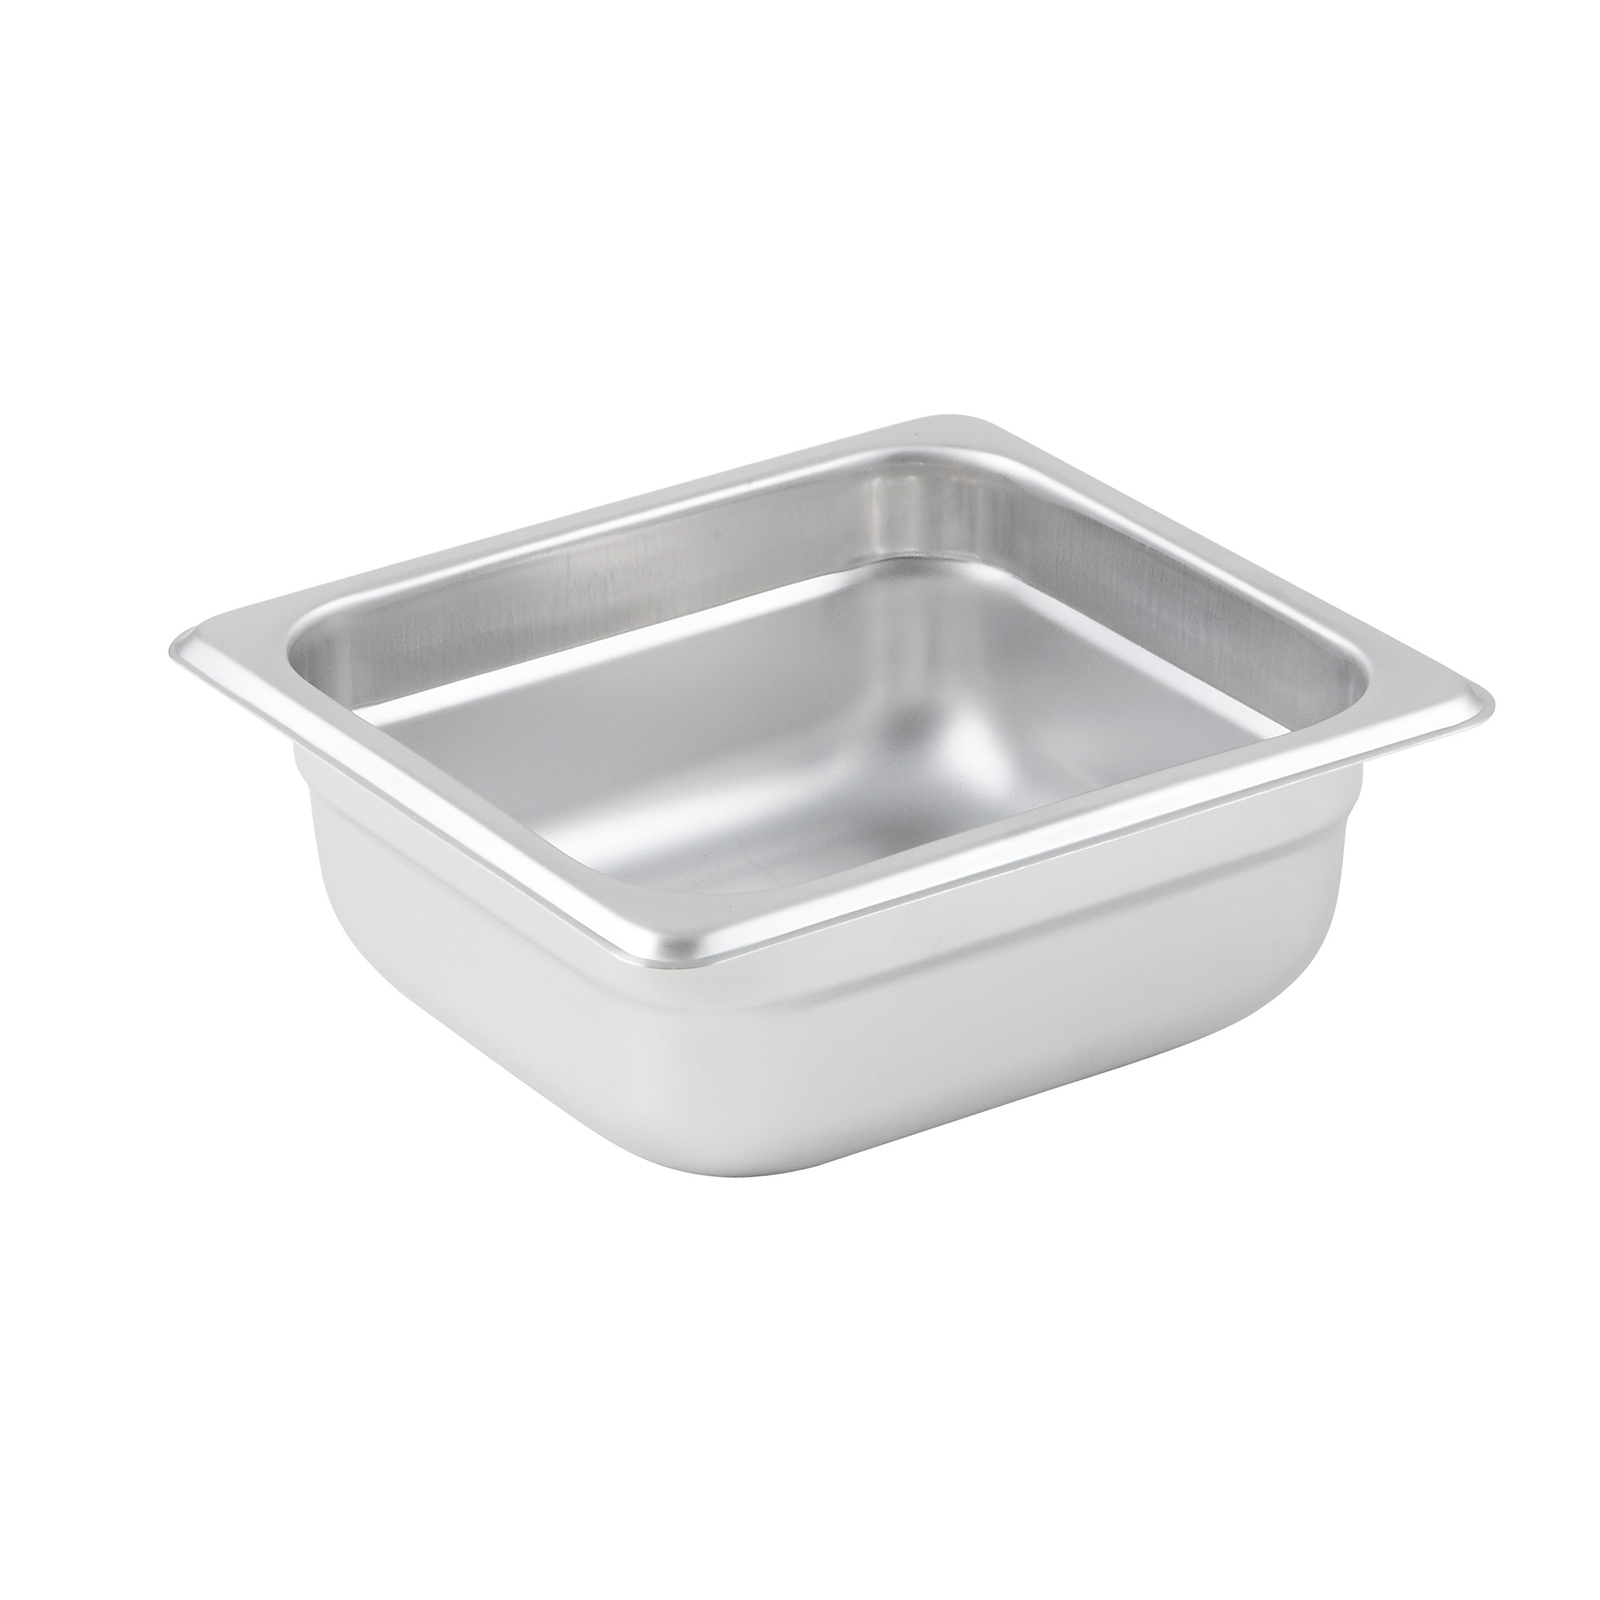 Winco SPJP-602 steam table pan, stainless steel